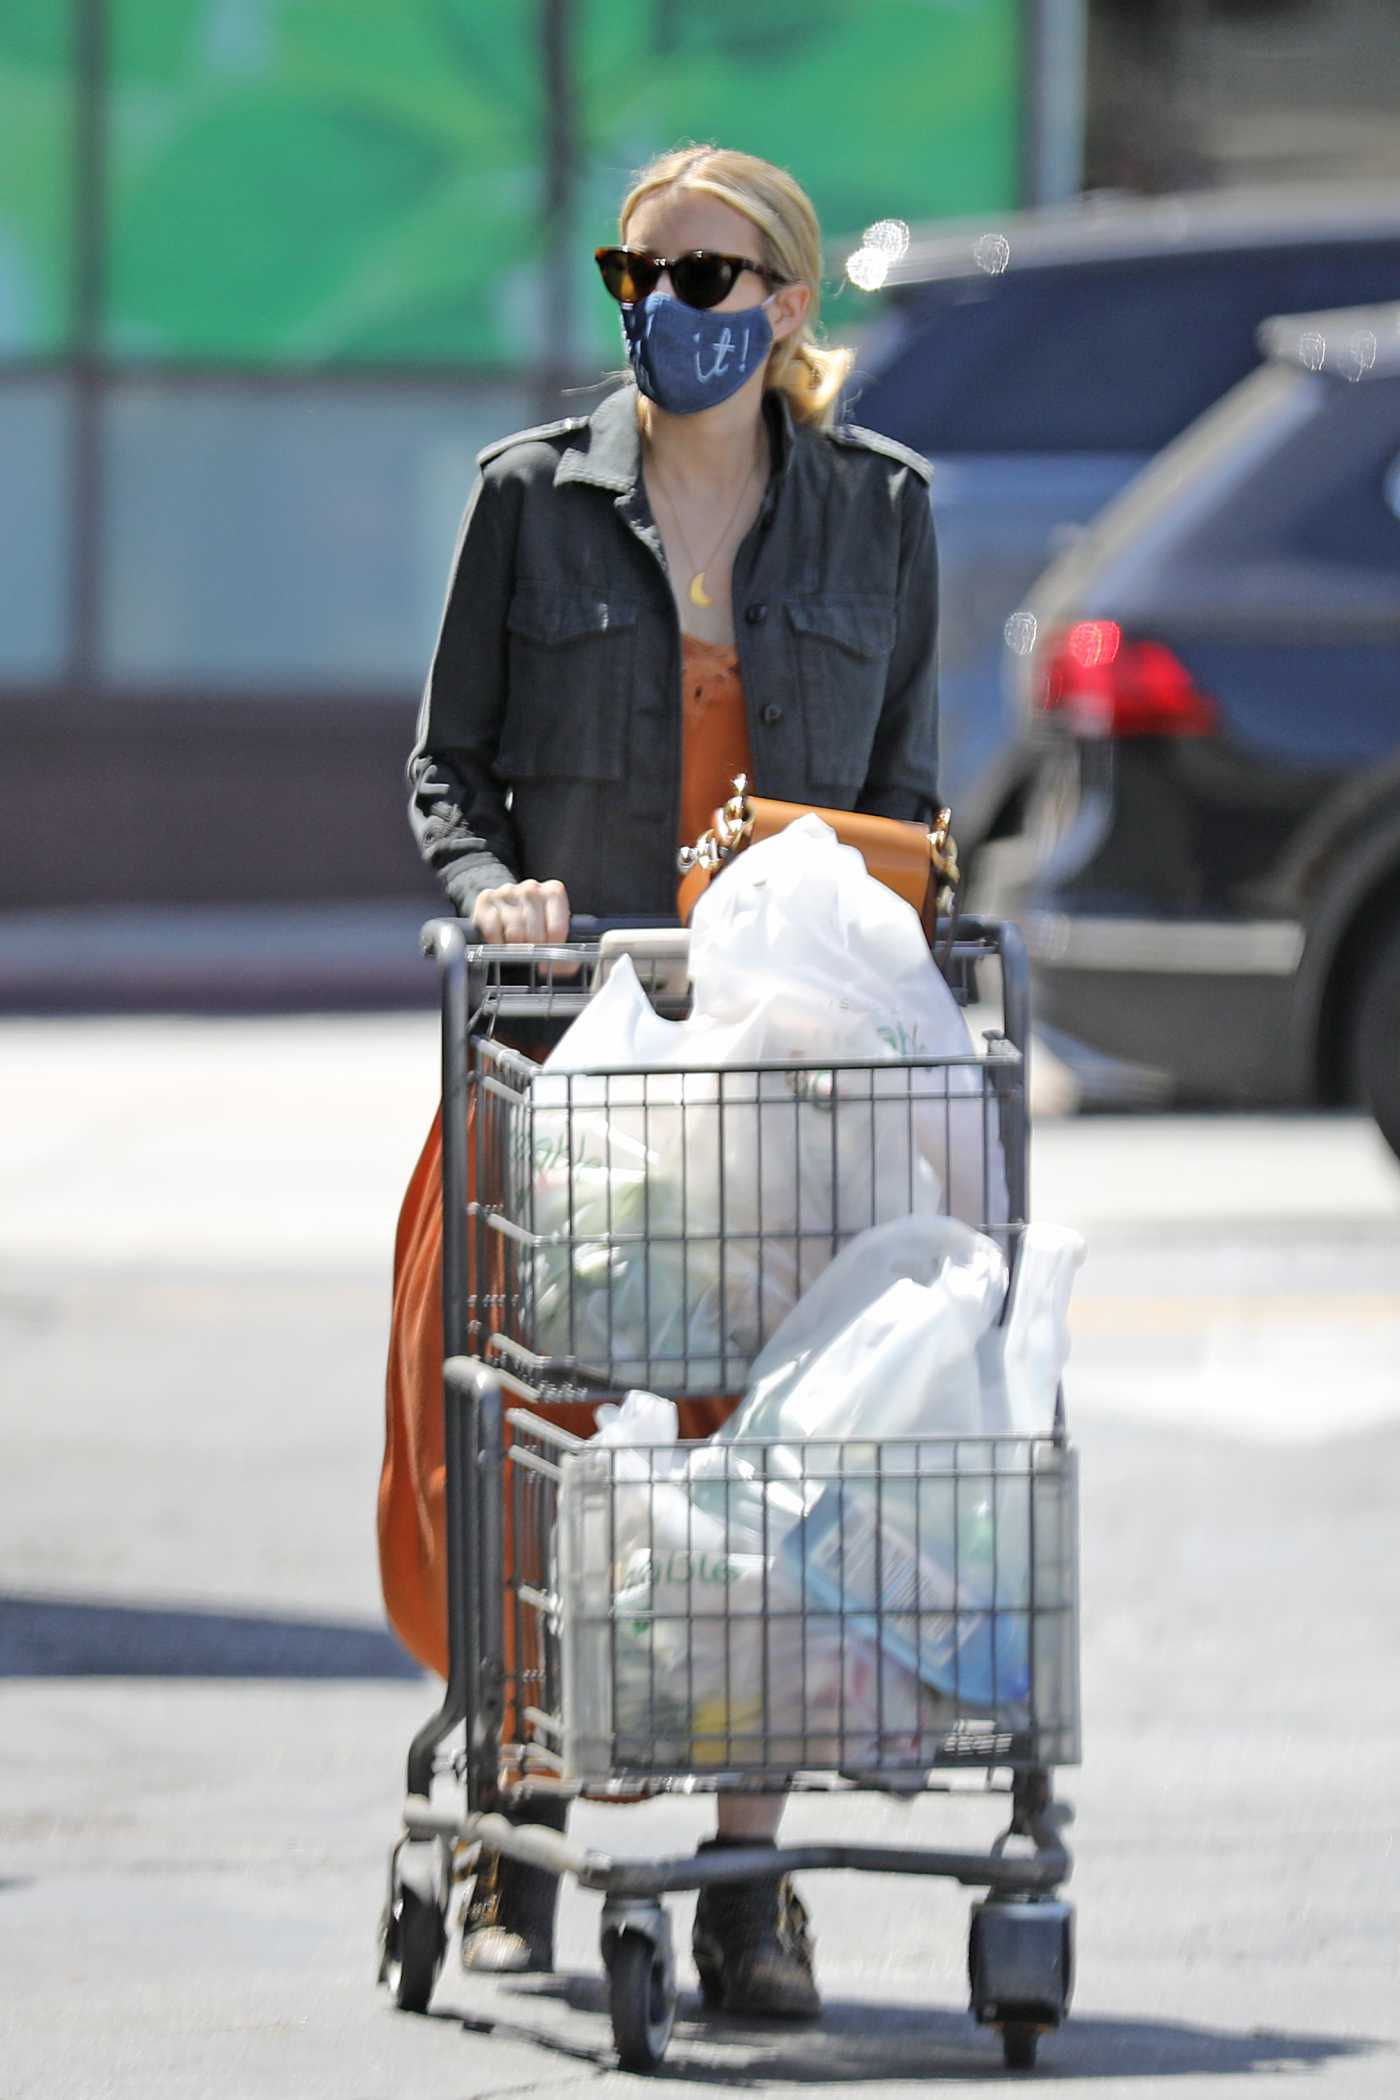 Emma Roberts in a Black Jacket Goes Grocery Shopping in LA 08/15/2020